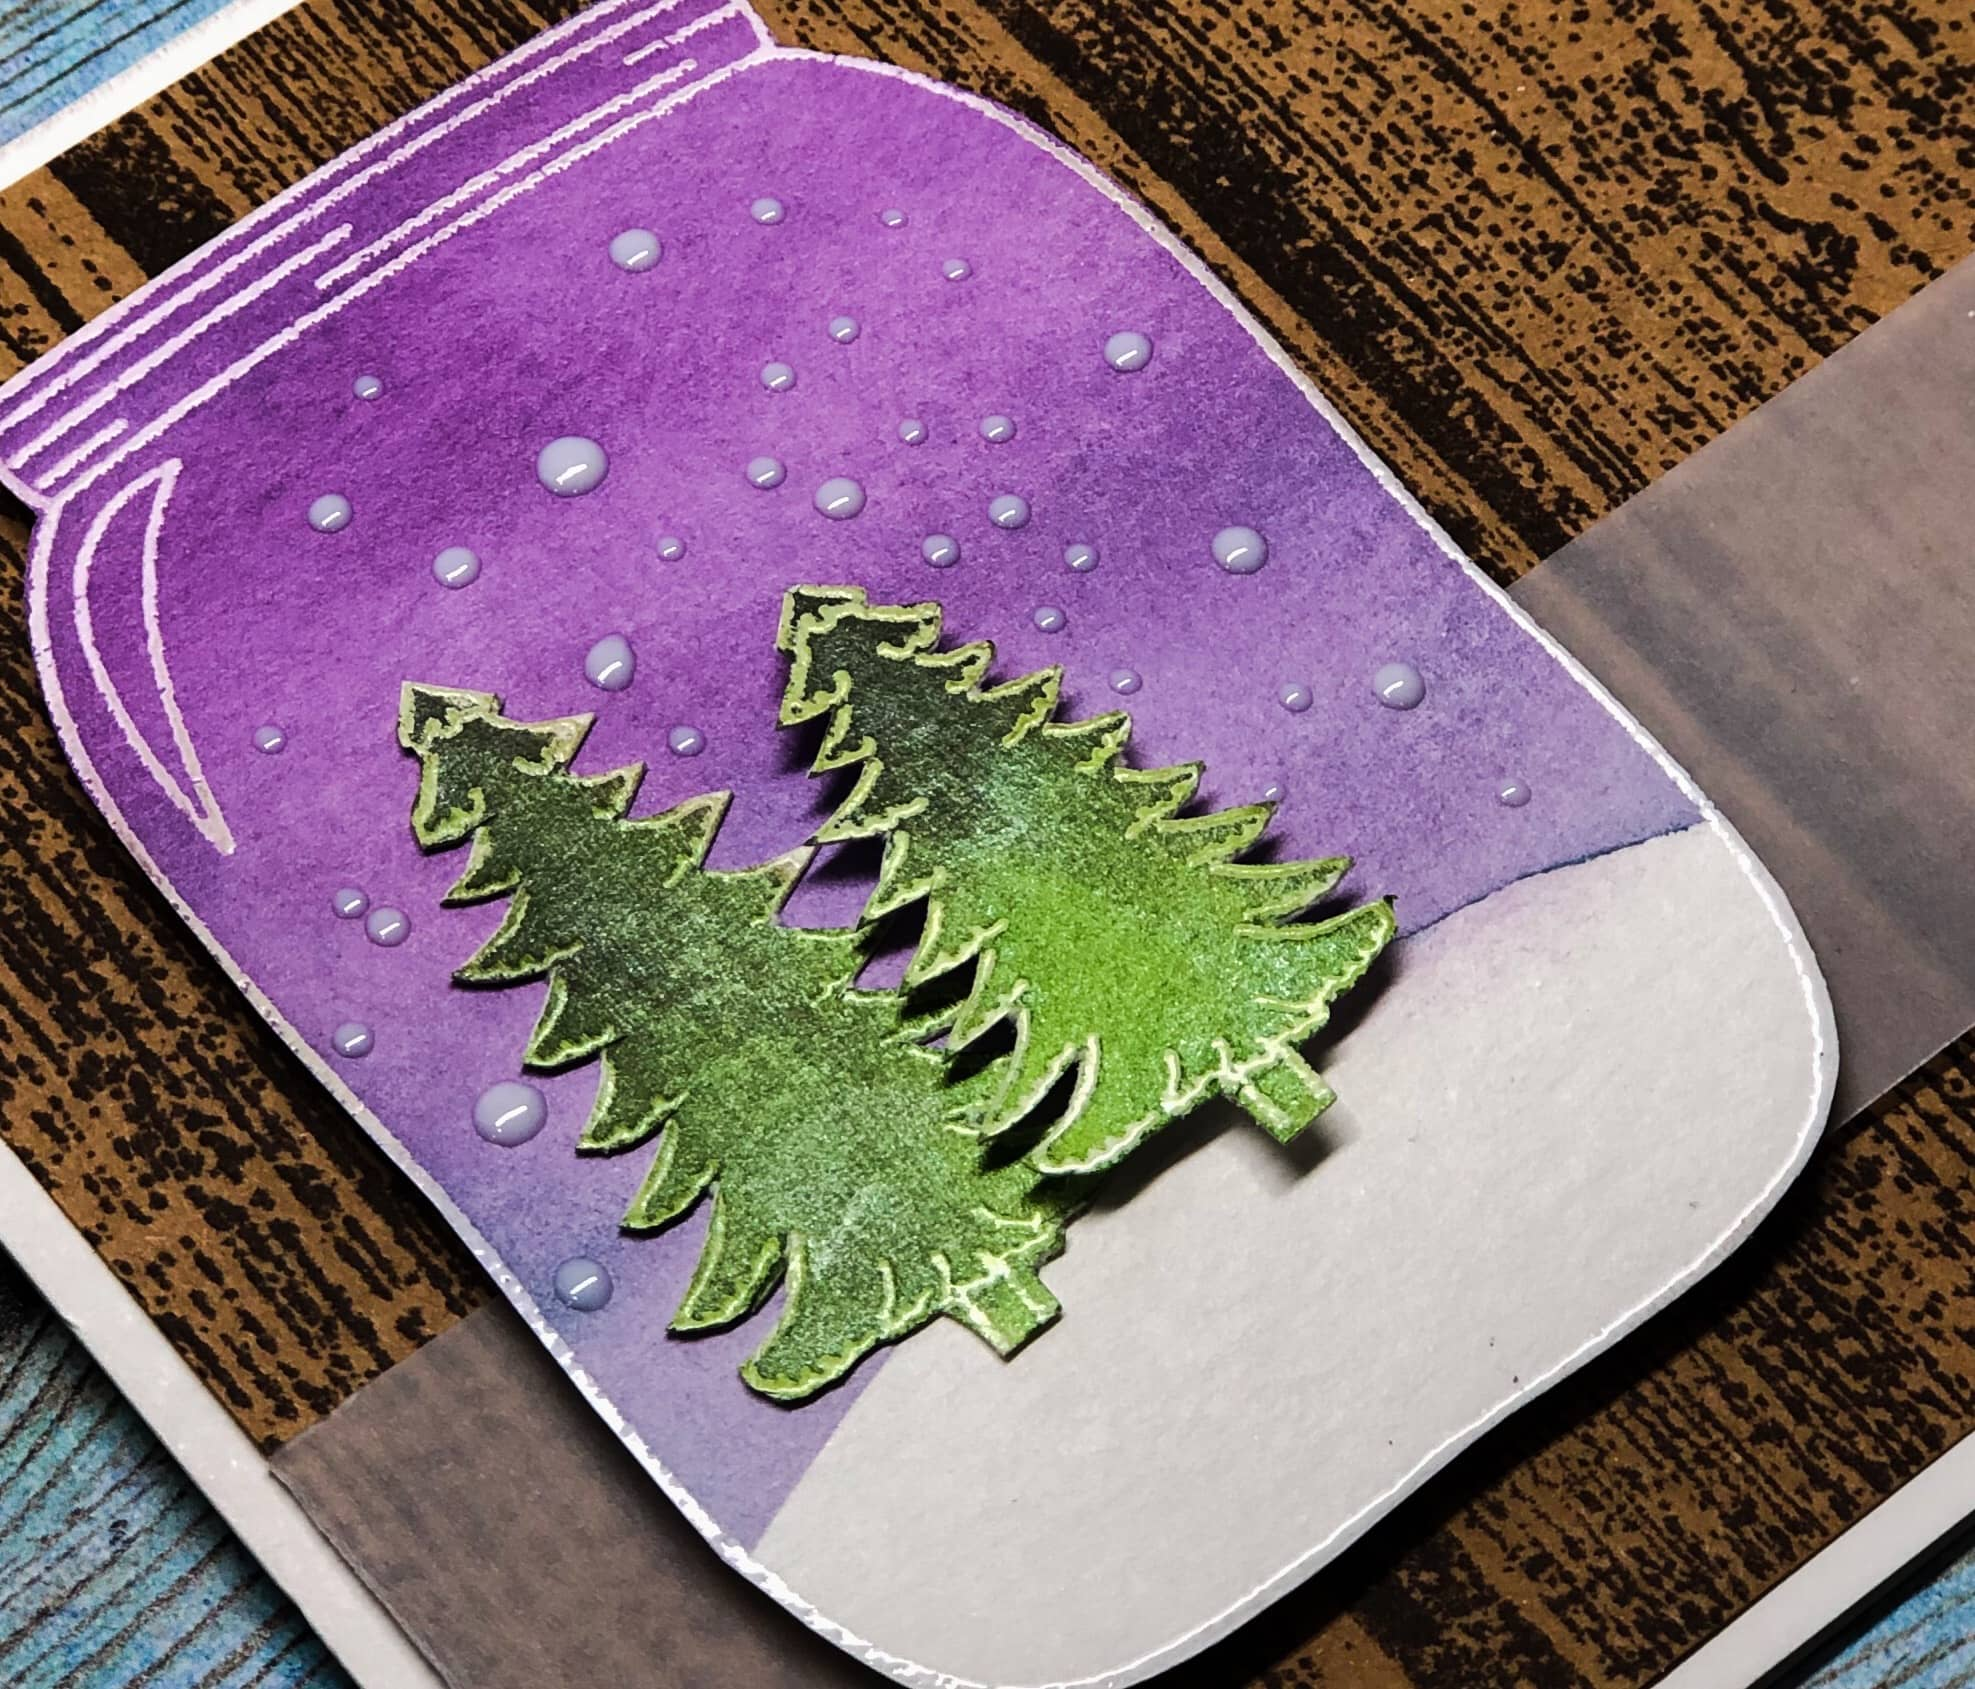 Handmade card featuring a winter tree scene in a mason jar shape.